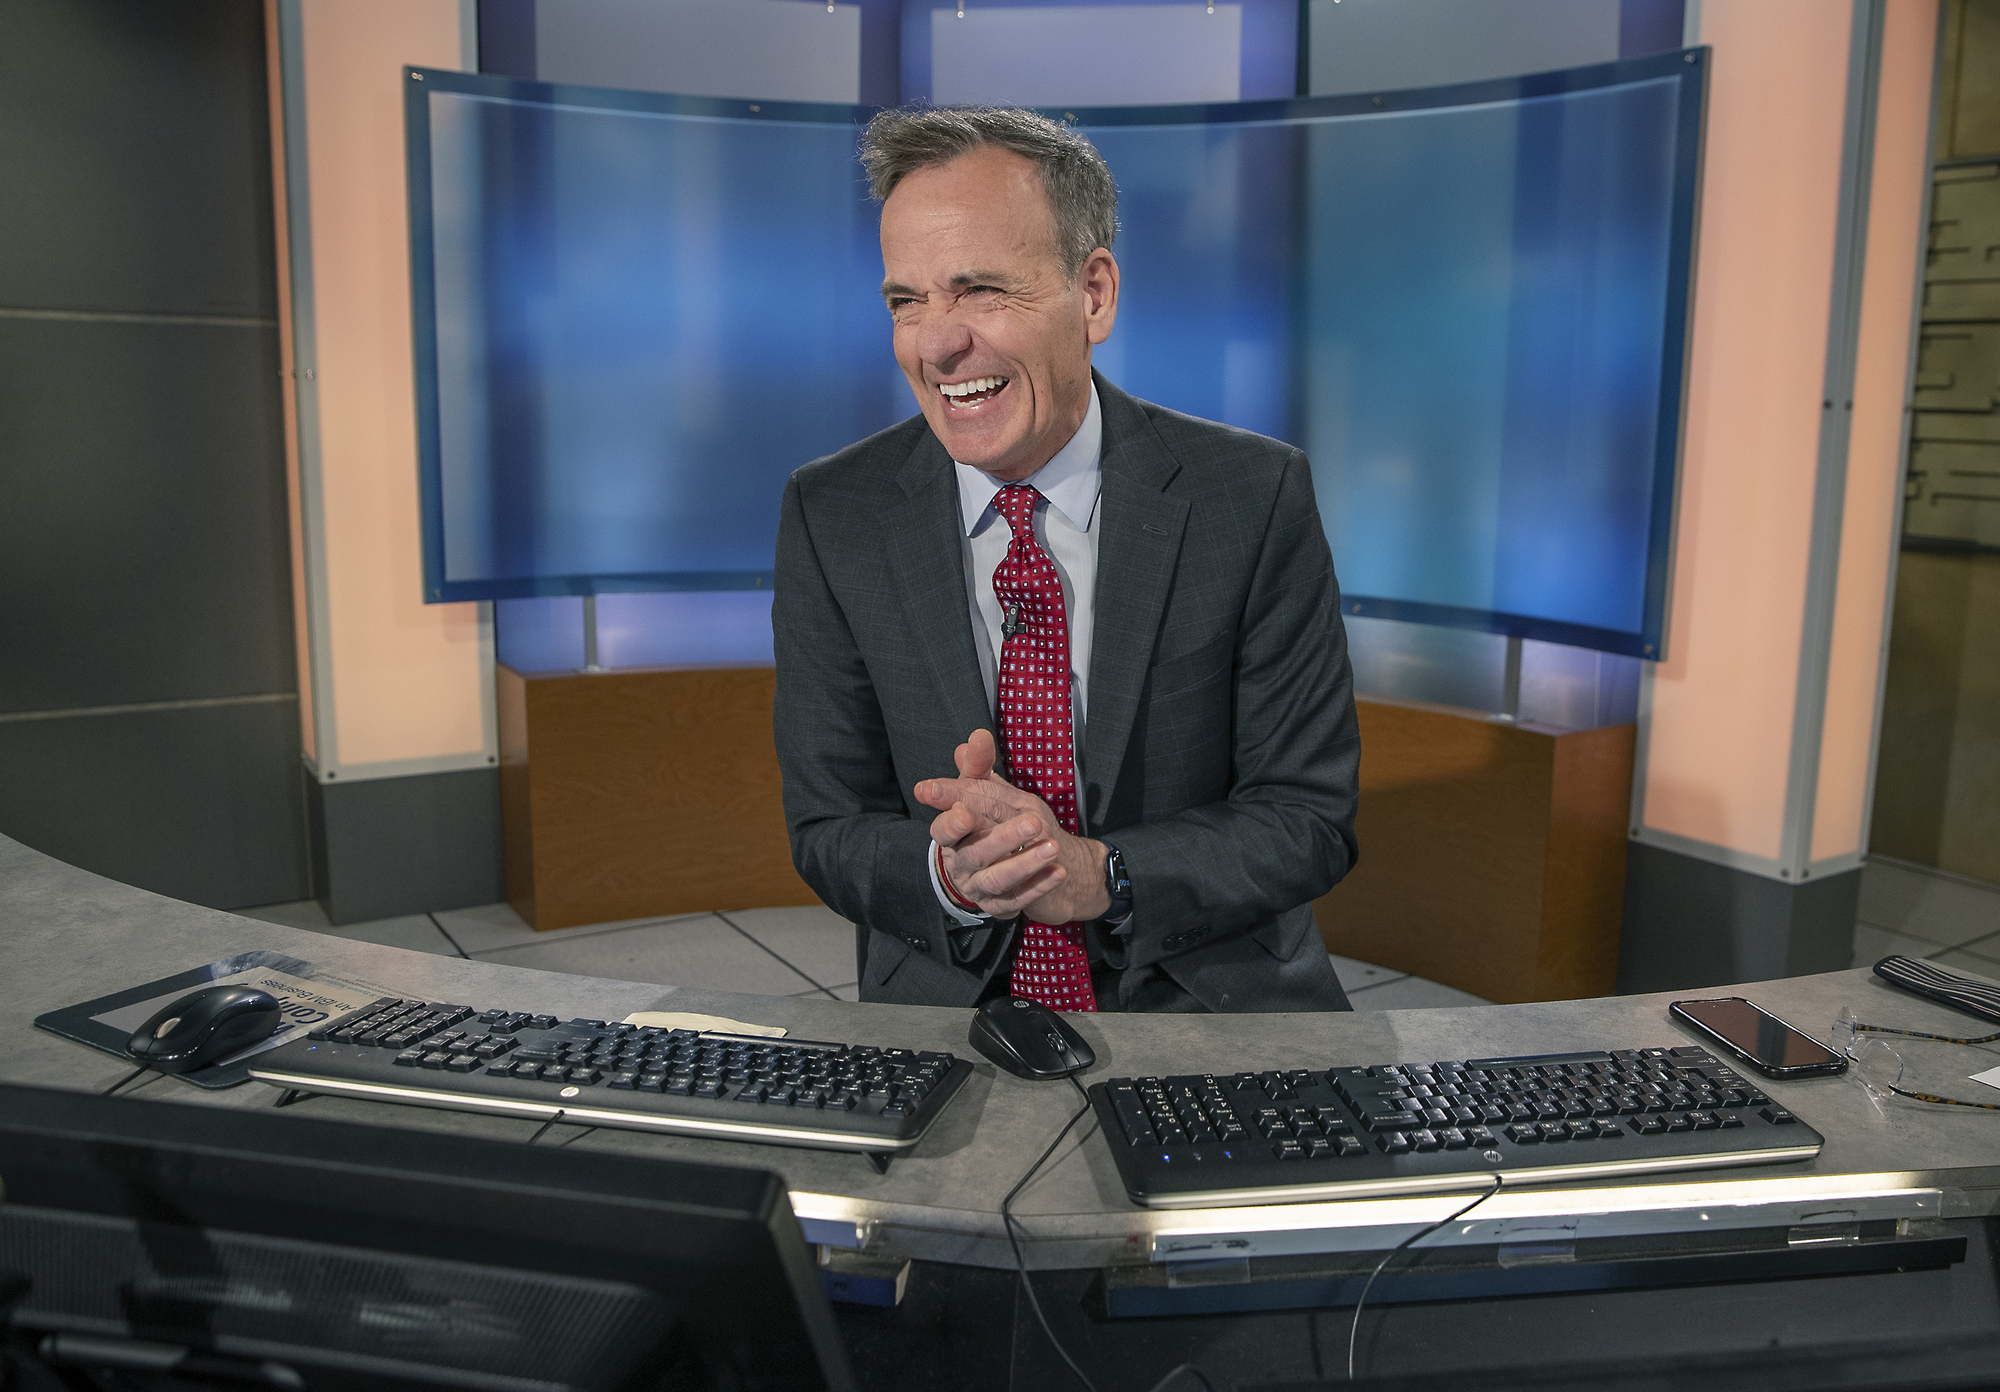 Ken Barlow shared a laugh with his KSTP co-anchors as he worked the morning news from the news station.